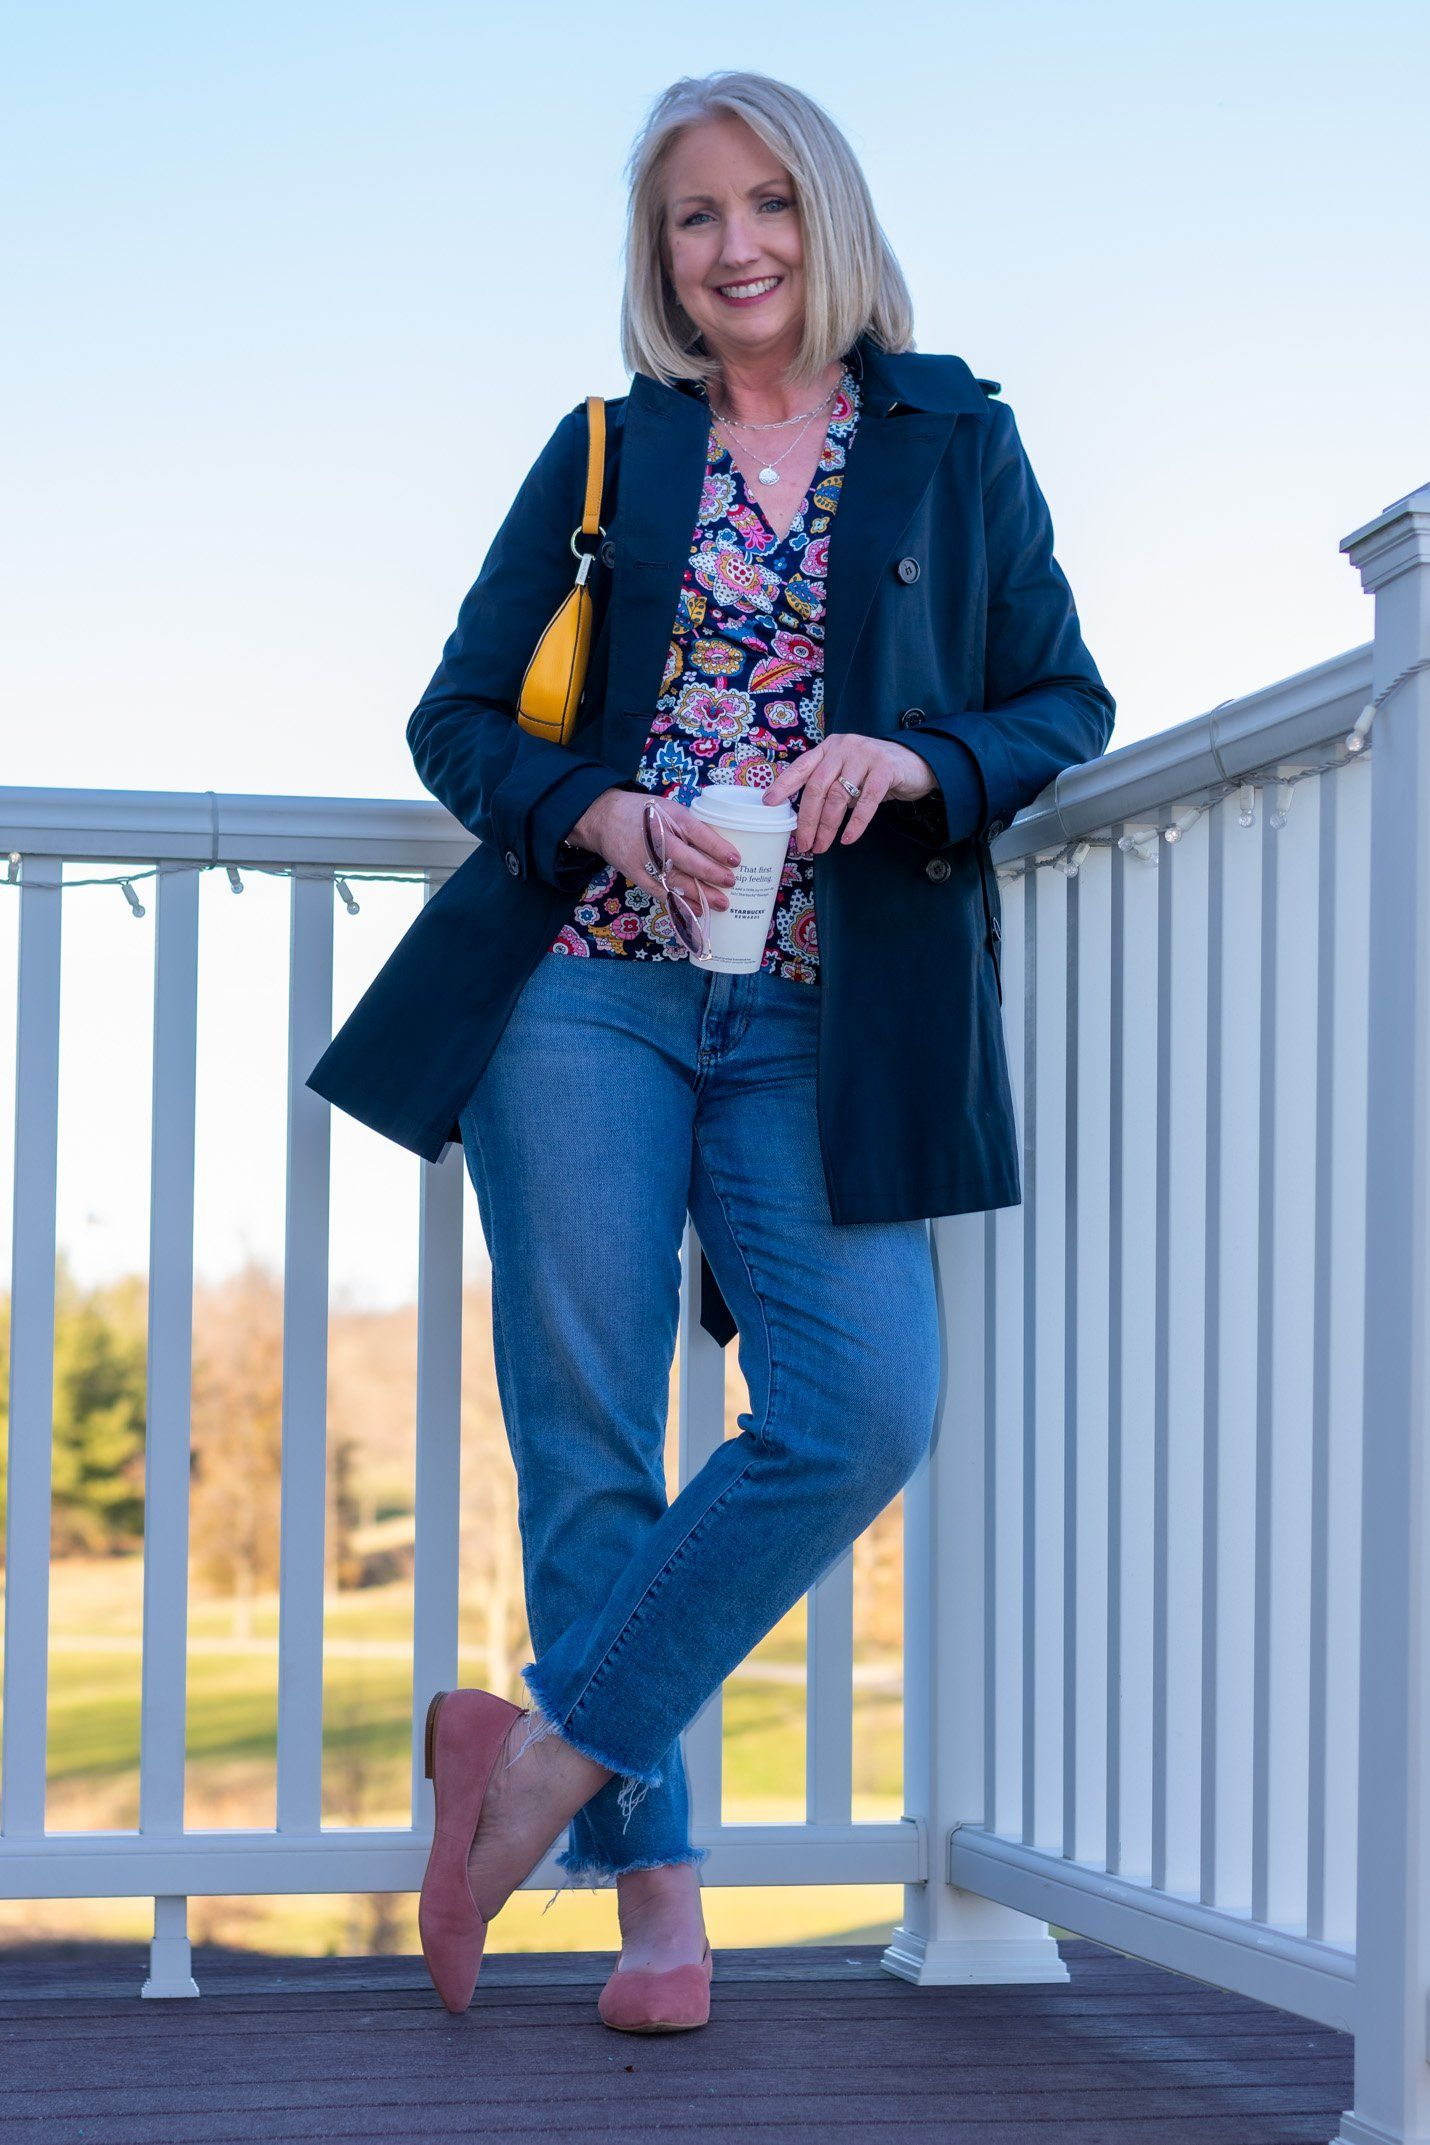 29 Spring 29 Trends to Wear with Jeans - Dressed for My Day in